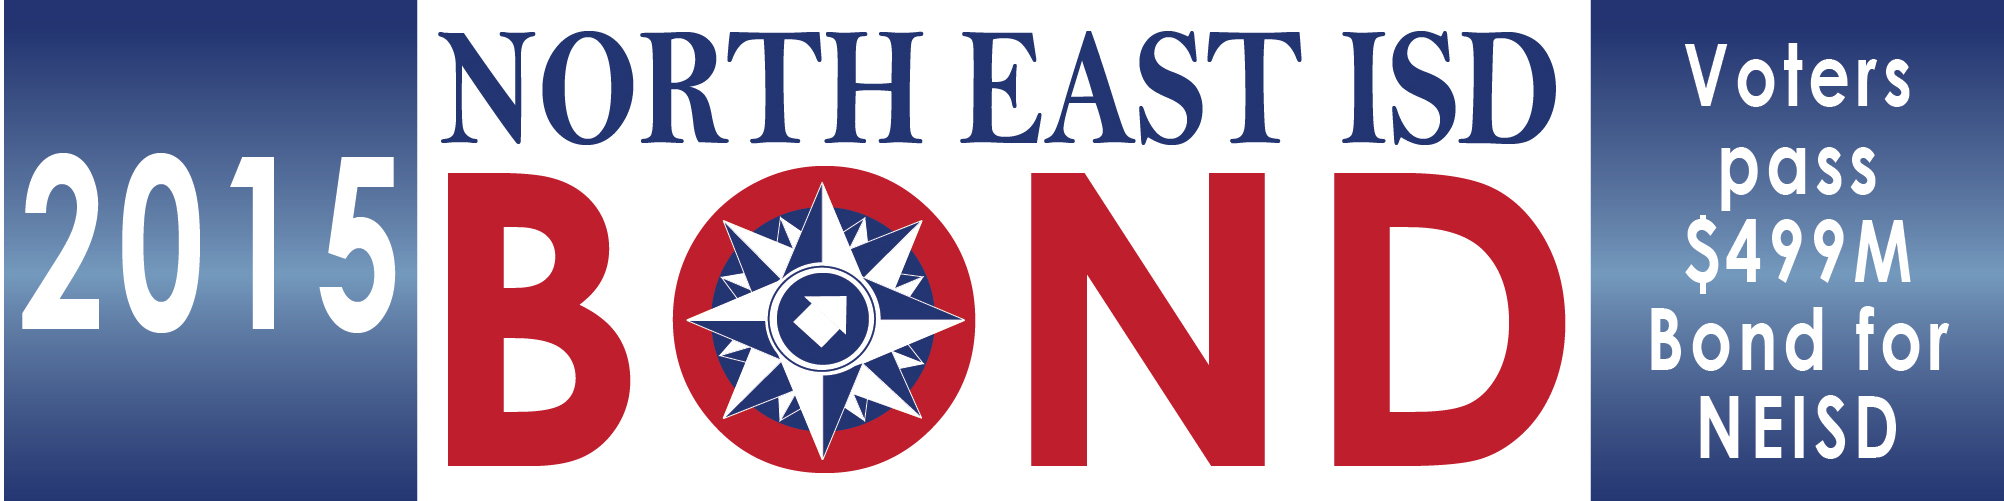 North East ISD 2015 Bond - Voters pass $499 Million Bond